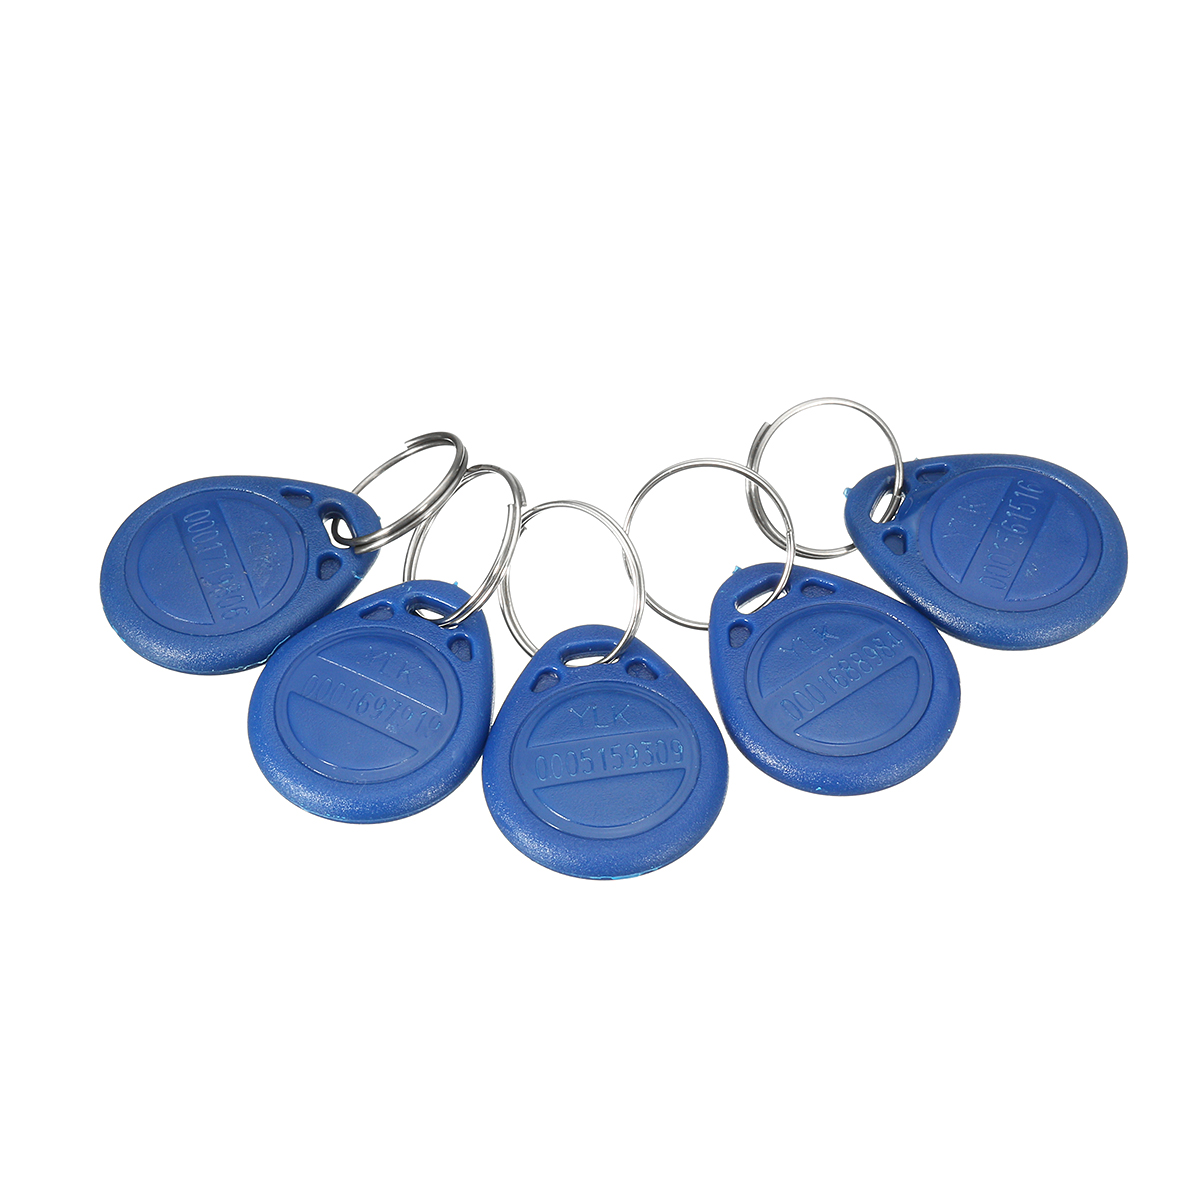 5Pcs ID Keyfbobs RFID Tag Key Ring Card 125KHZ Proximity Token Access Control Attendance TK4100 5pcs lot free shipping outdoor 125khz em id weigand 26 proximity access control rfid card reader with two led lights